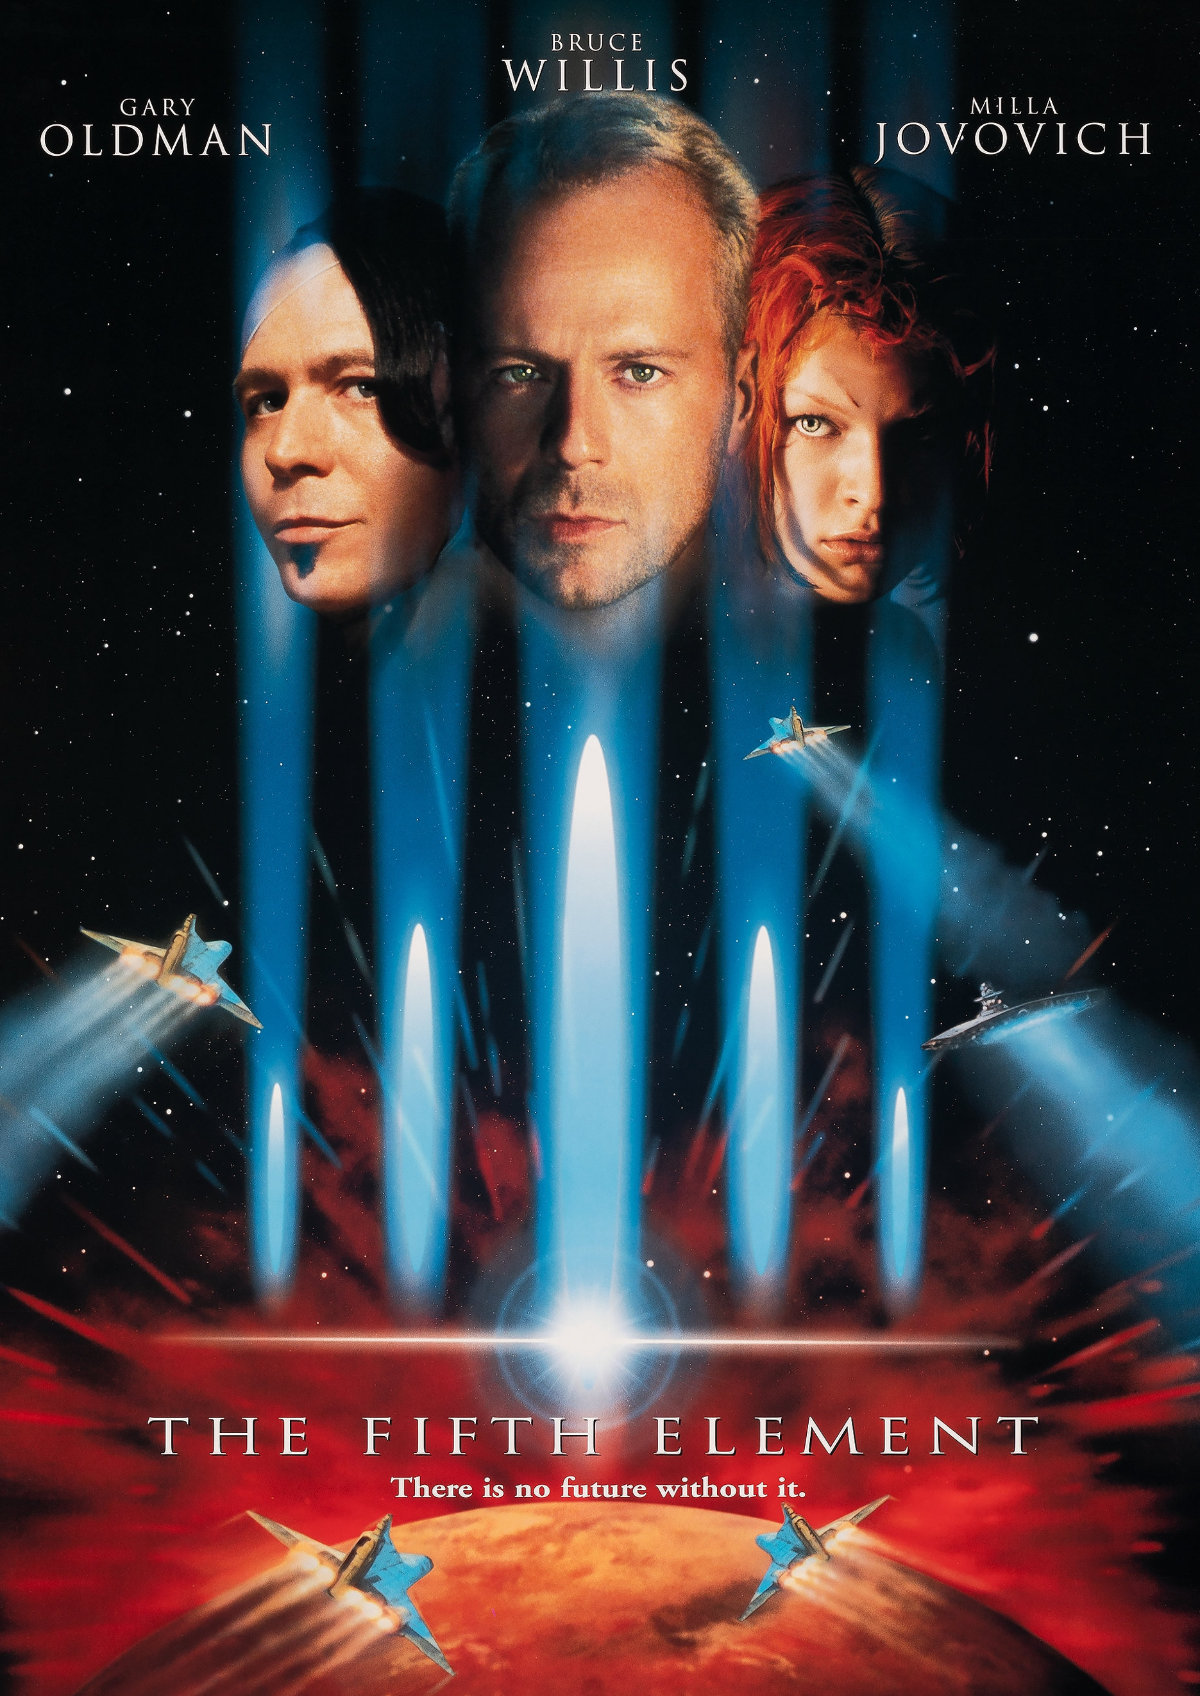 'The Fifth Element' movie poster